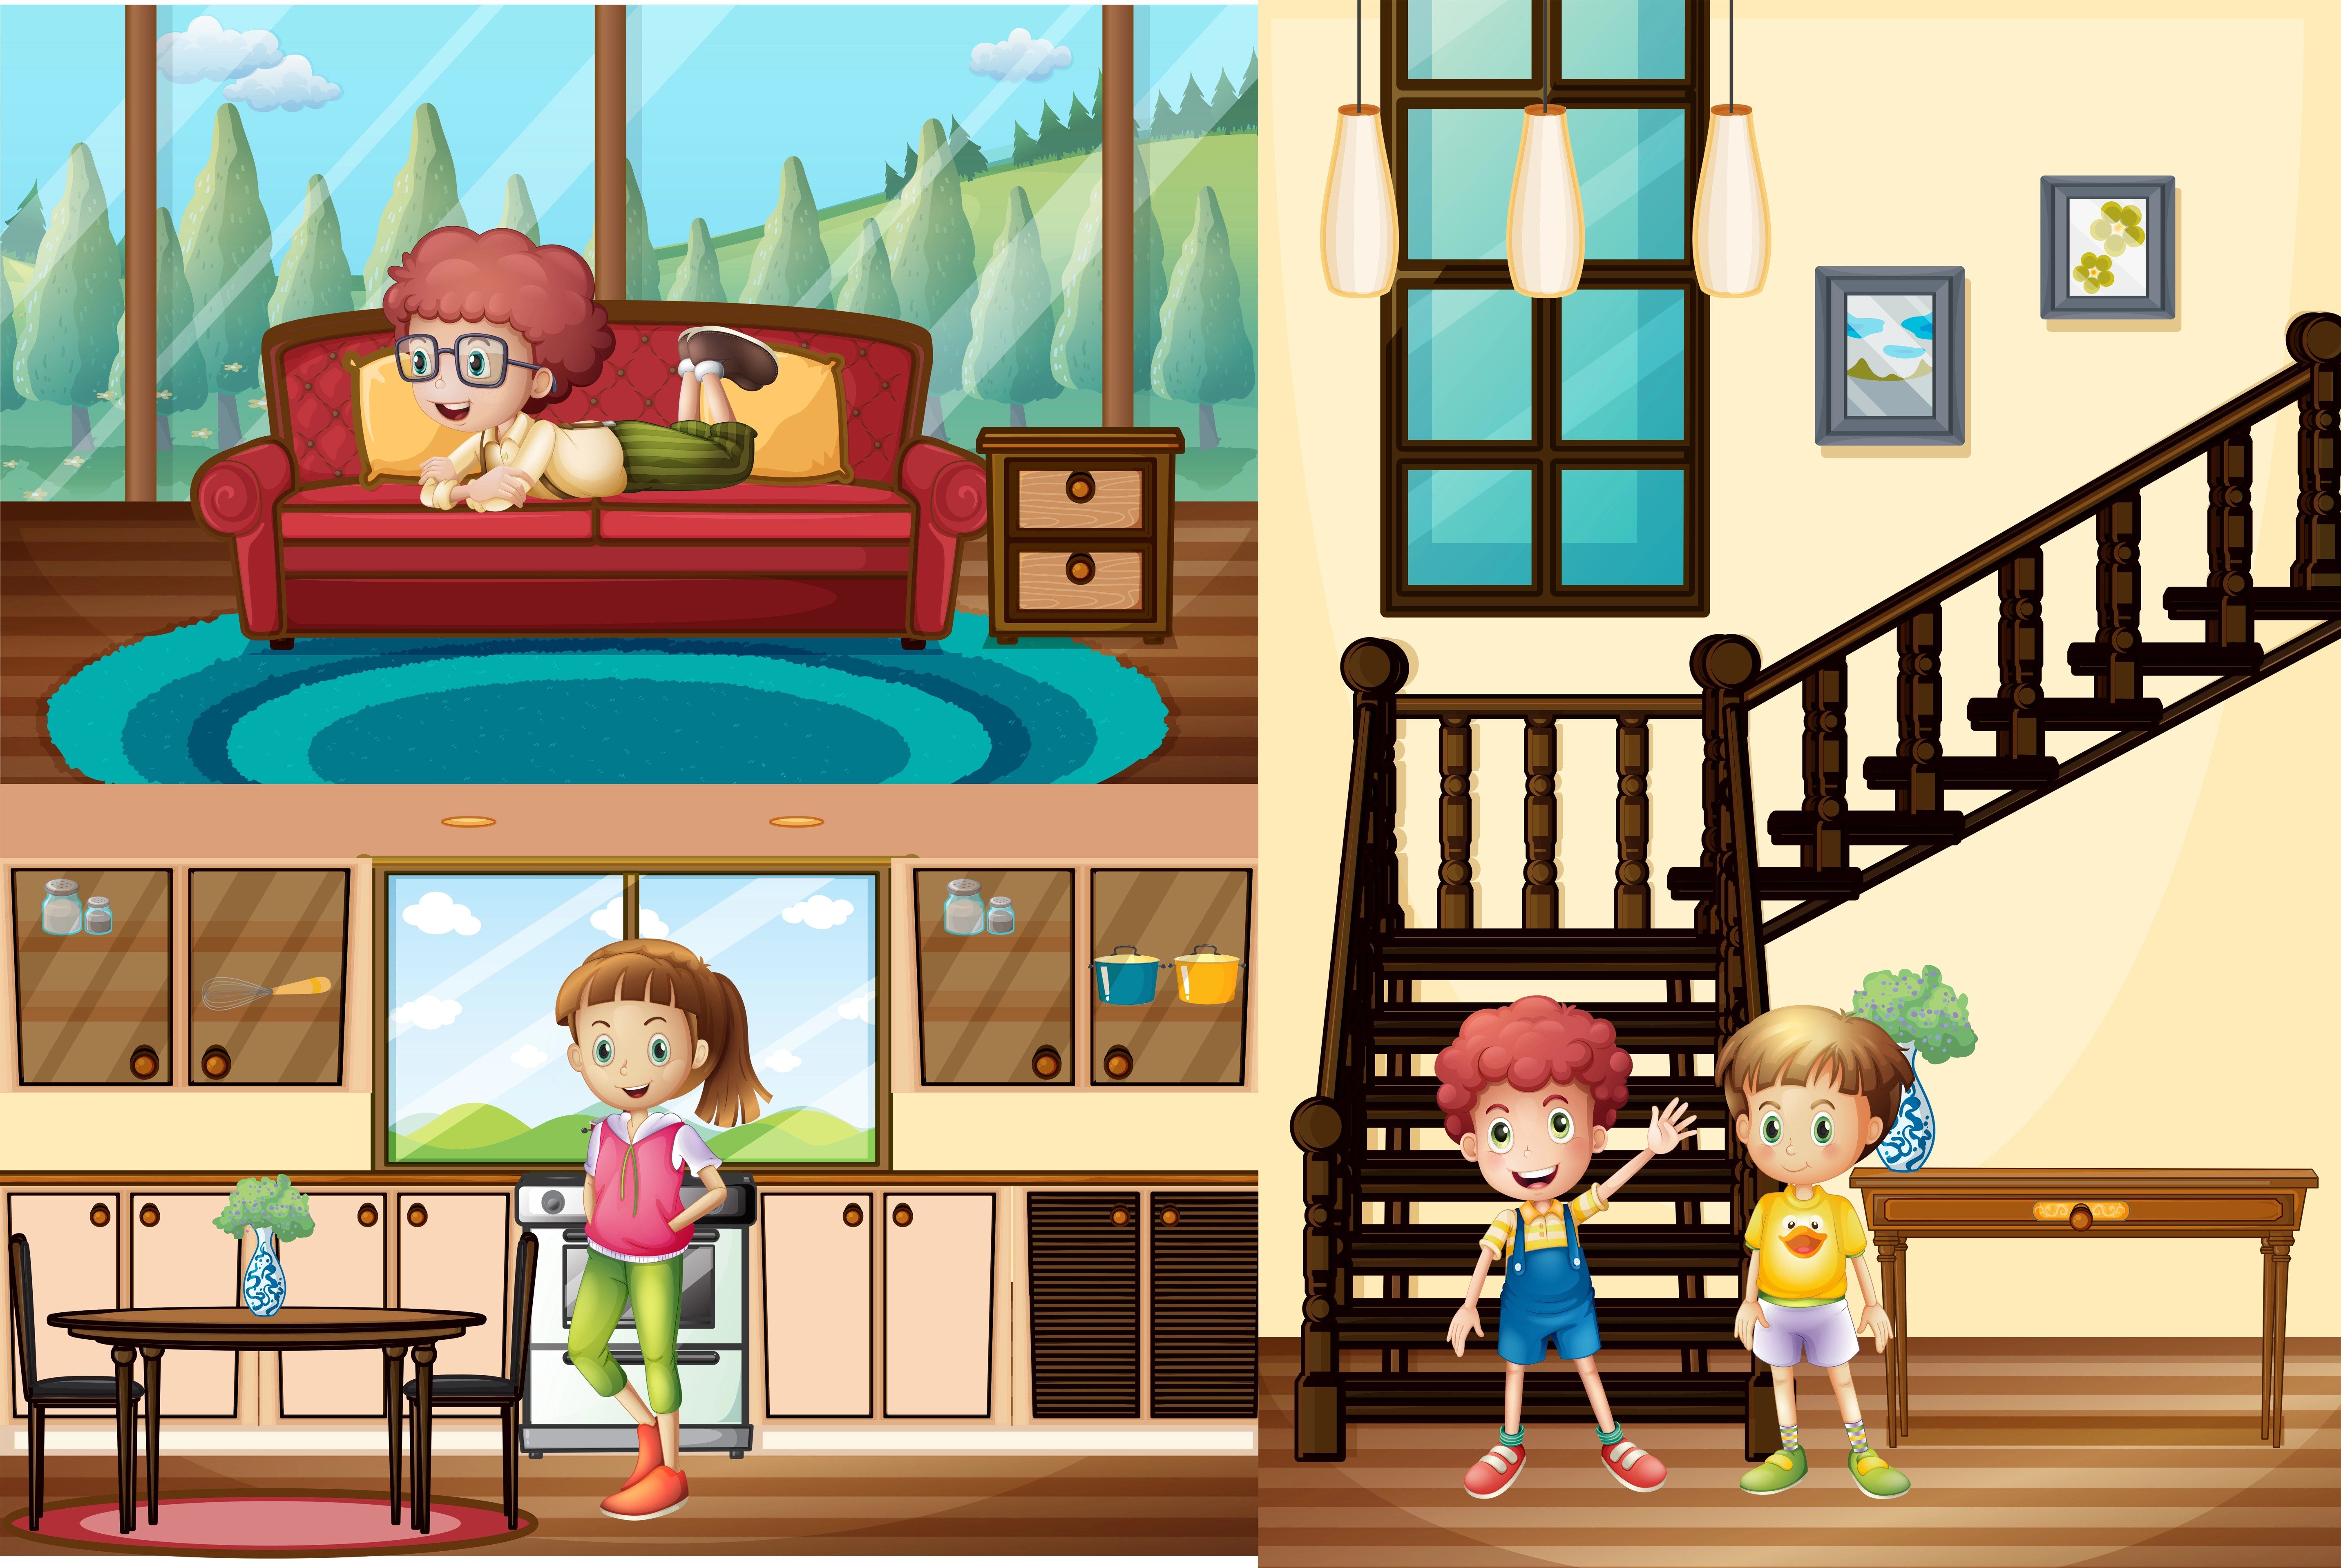 Kids In Different Rooms Of The House